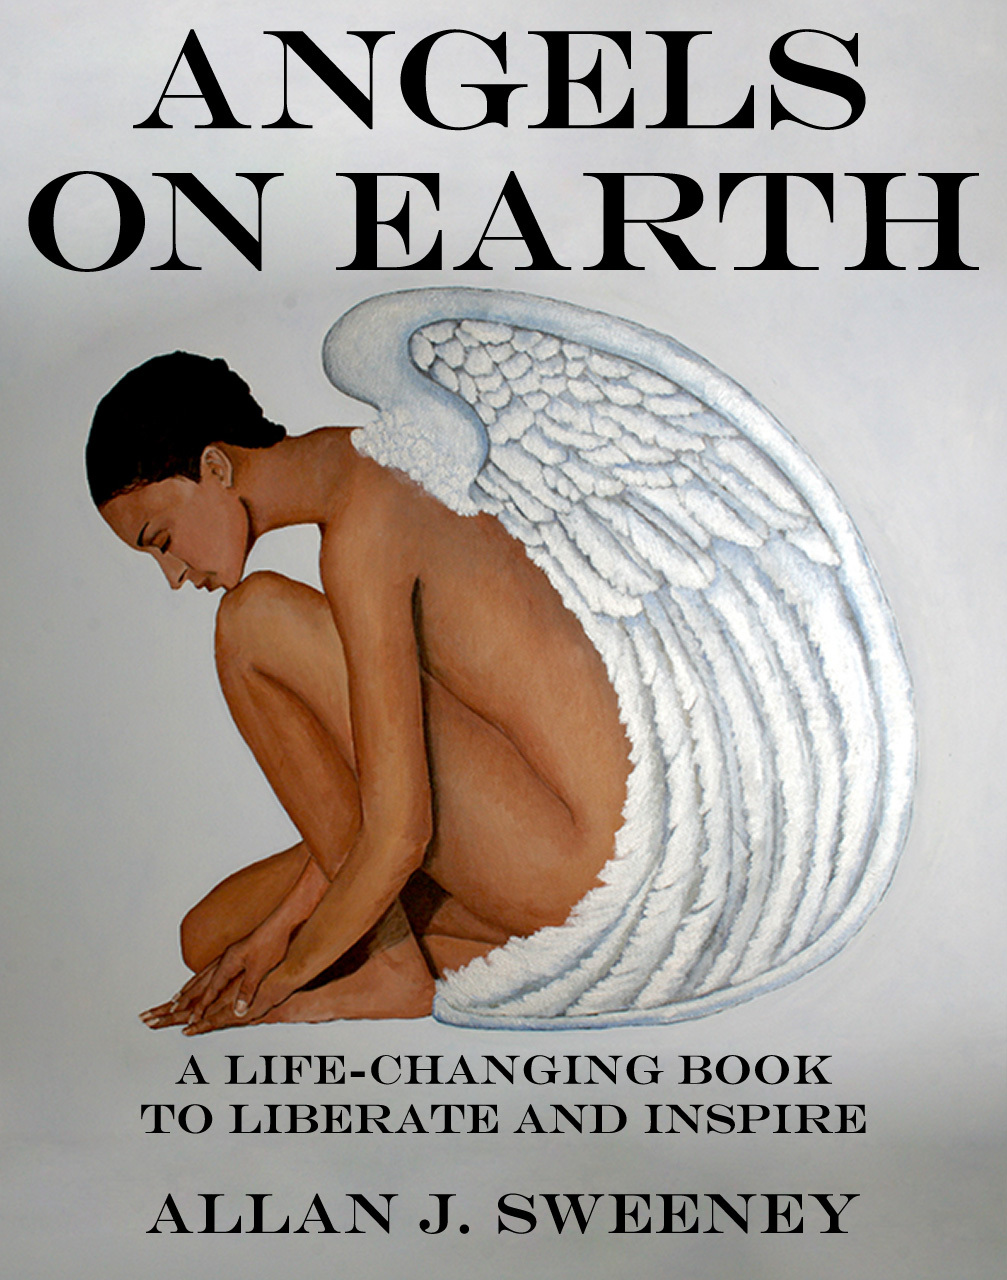 Angels on Earth: A Life-Changing Book to Liberate and Inspire By: Allan J. Sweeney